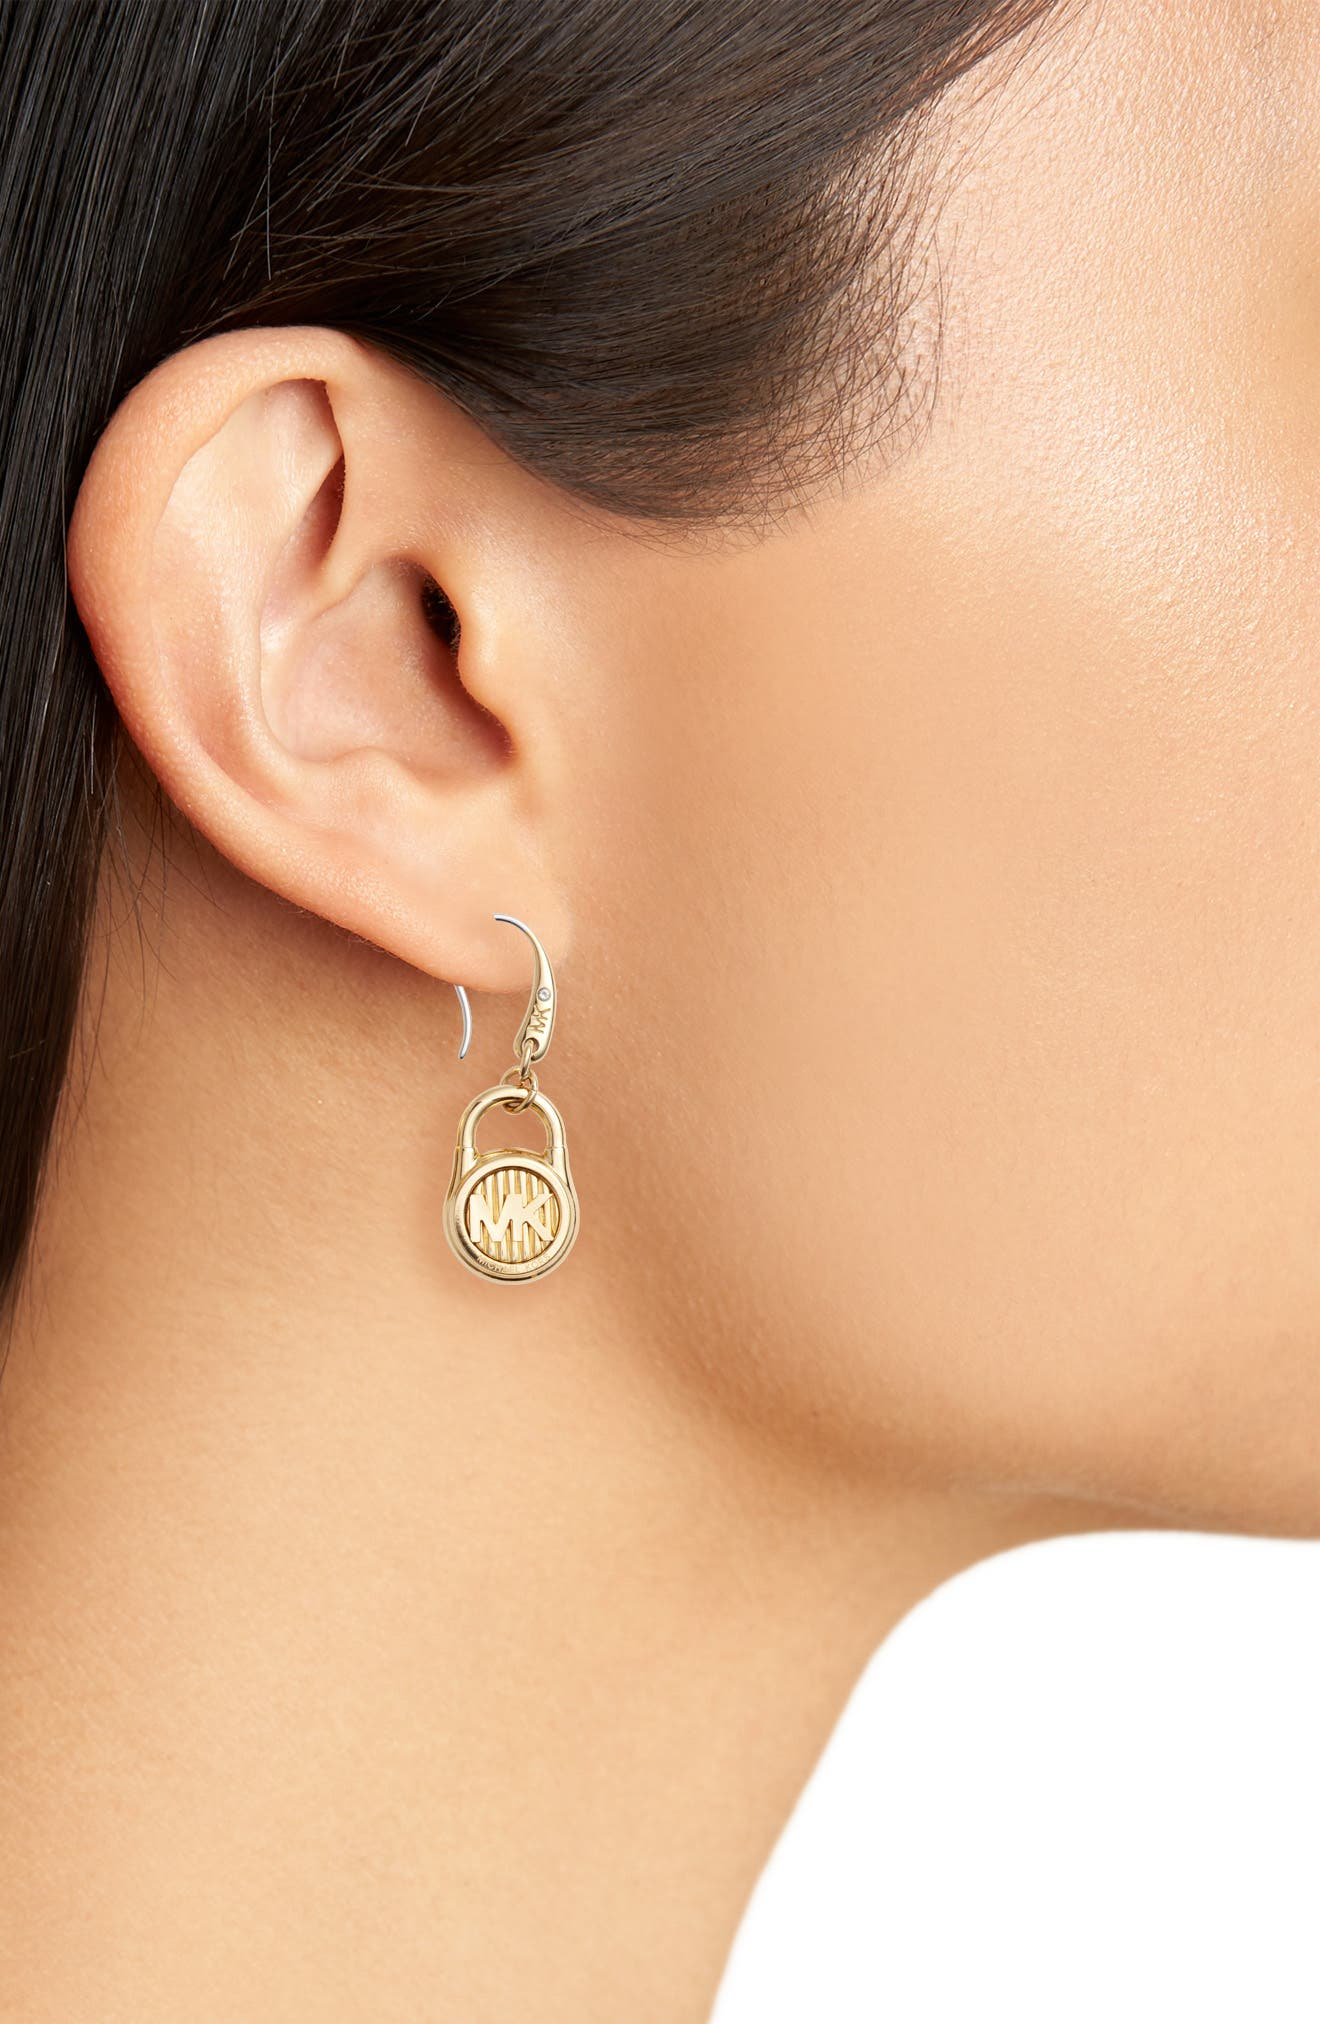 Padlock Drop Earrings,                             Alternate thumbnail 2, color,                             710